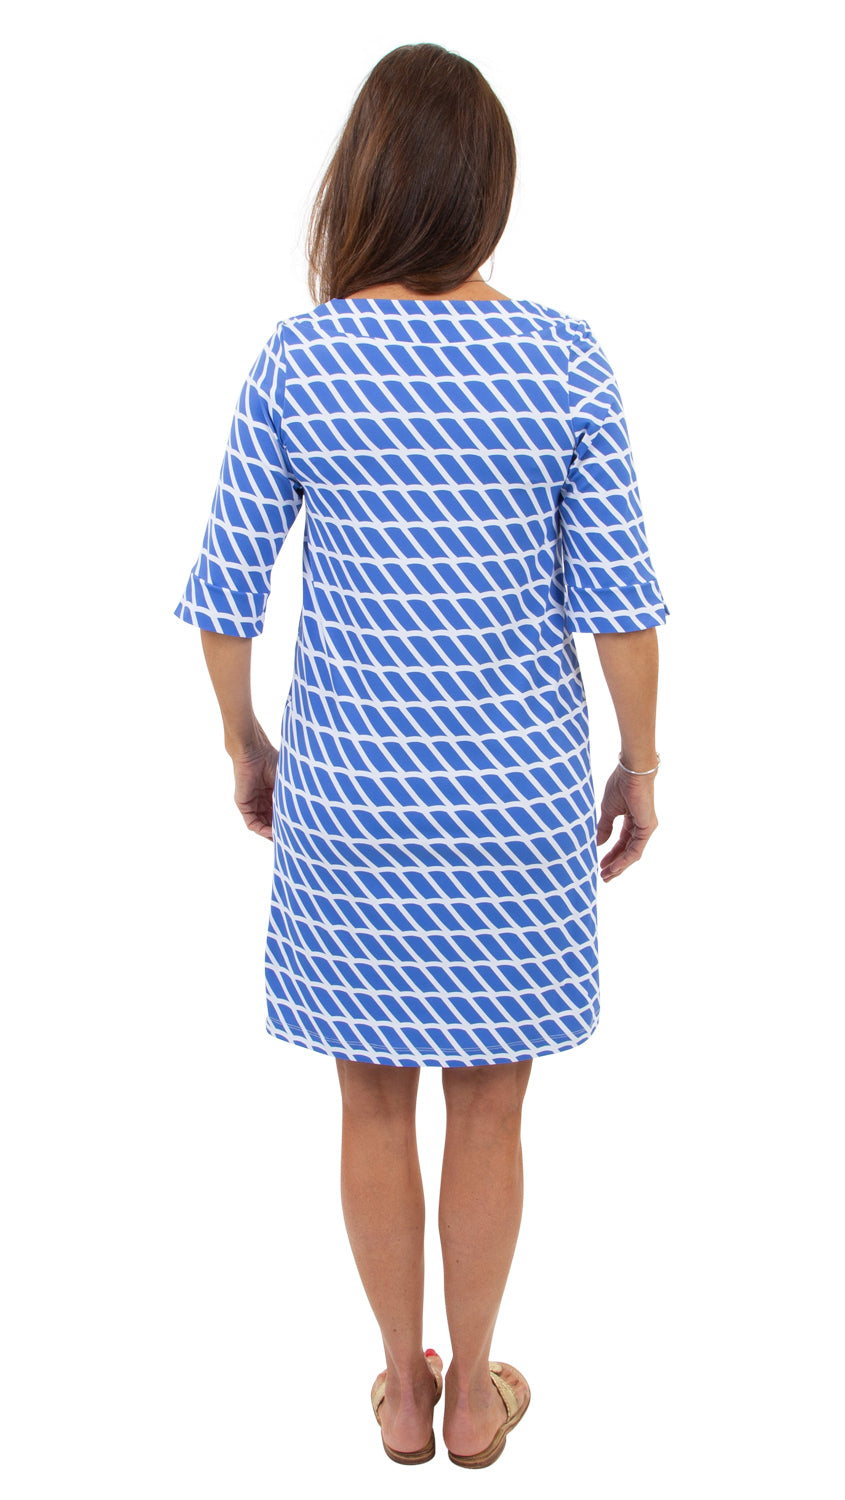 Yacht Club Shift 3/4 Sleeve - Blue/White Rope Stripe